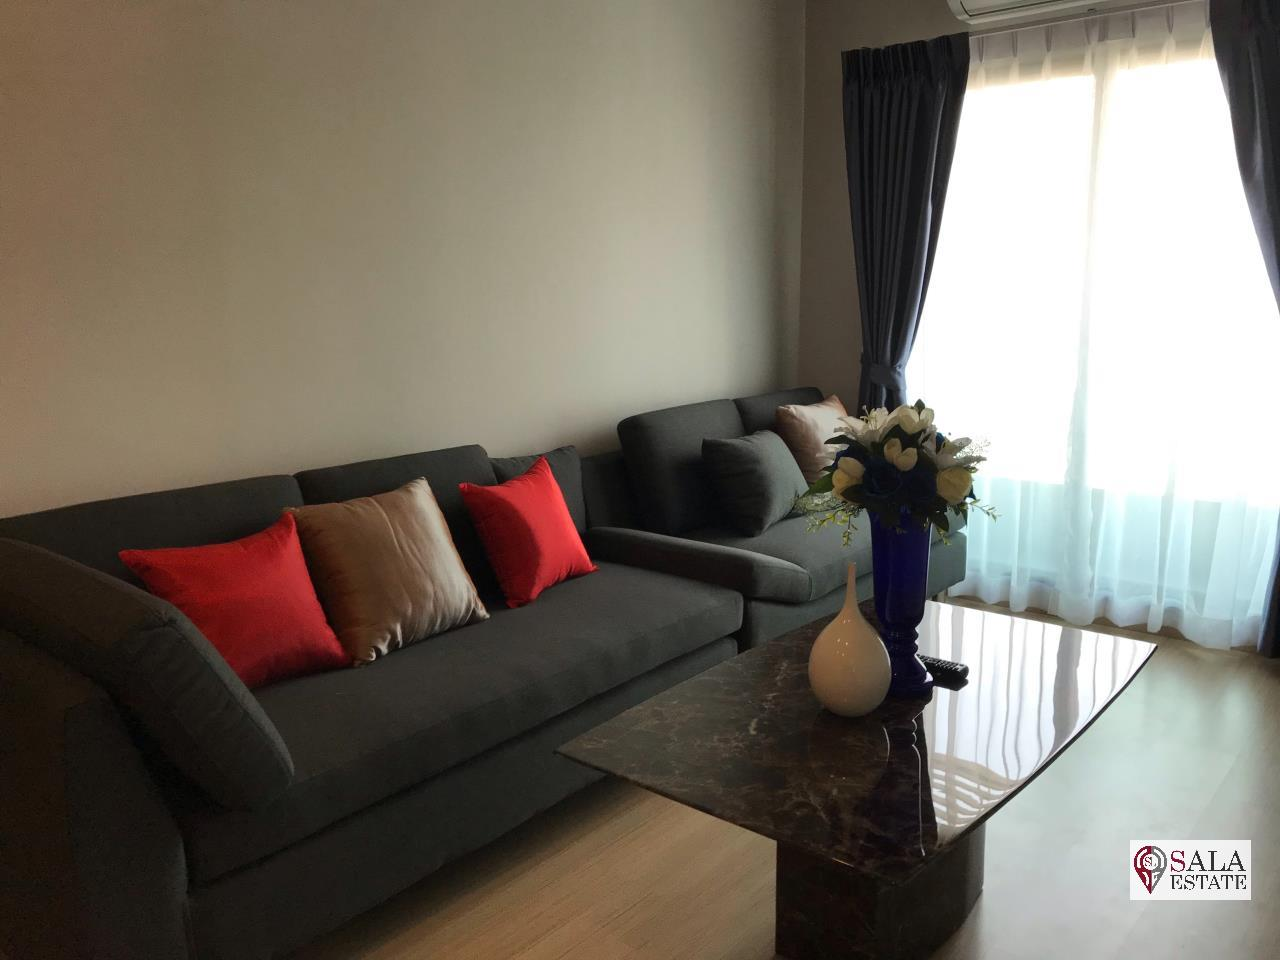 SALA ESTATE Agency's LUMPINI SUITE DINDAENG-RATCHAPRAROP – BTS VICTORY MONUMENT, 2 BEDROOM 1 BATHROOM, FULLY FURNISHED, CITY VIEW 1